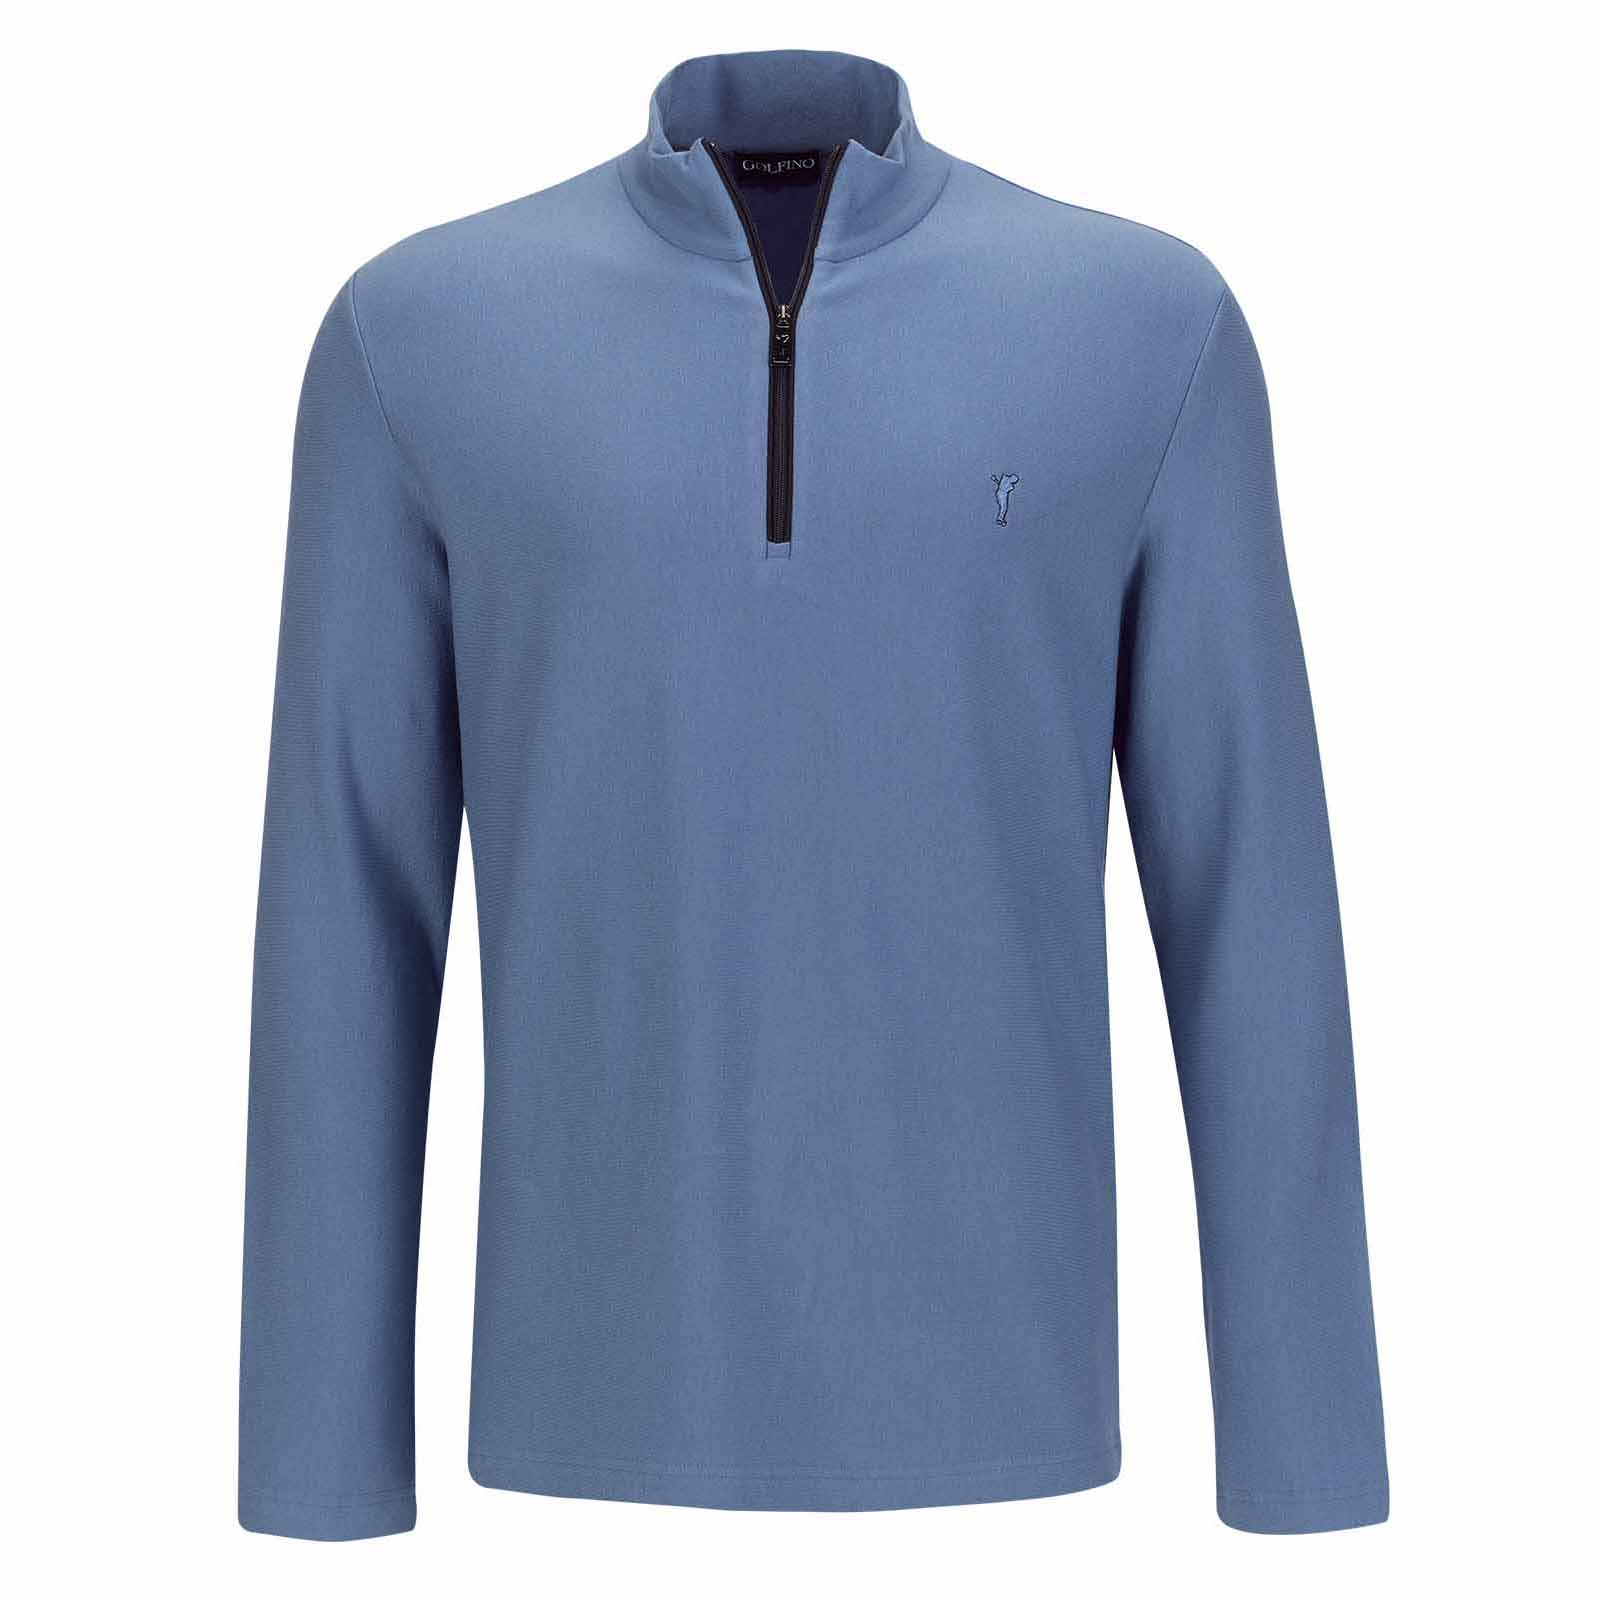 Men's long-sleeve Cold Protection thermal base layer